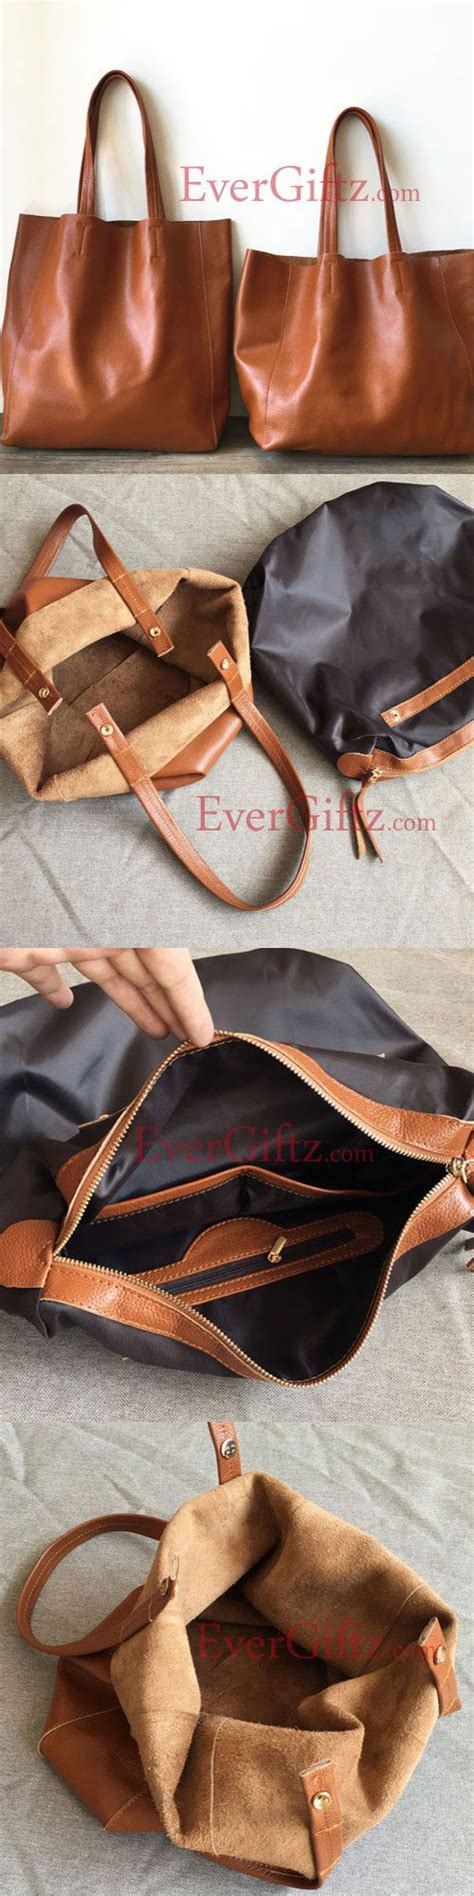 3619 best leather totes images on leather totes bags and leather tote bags